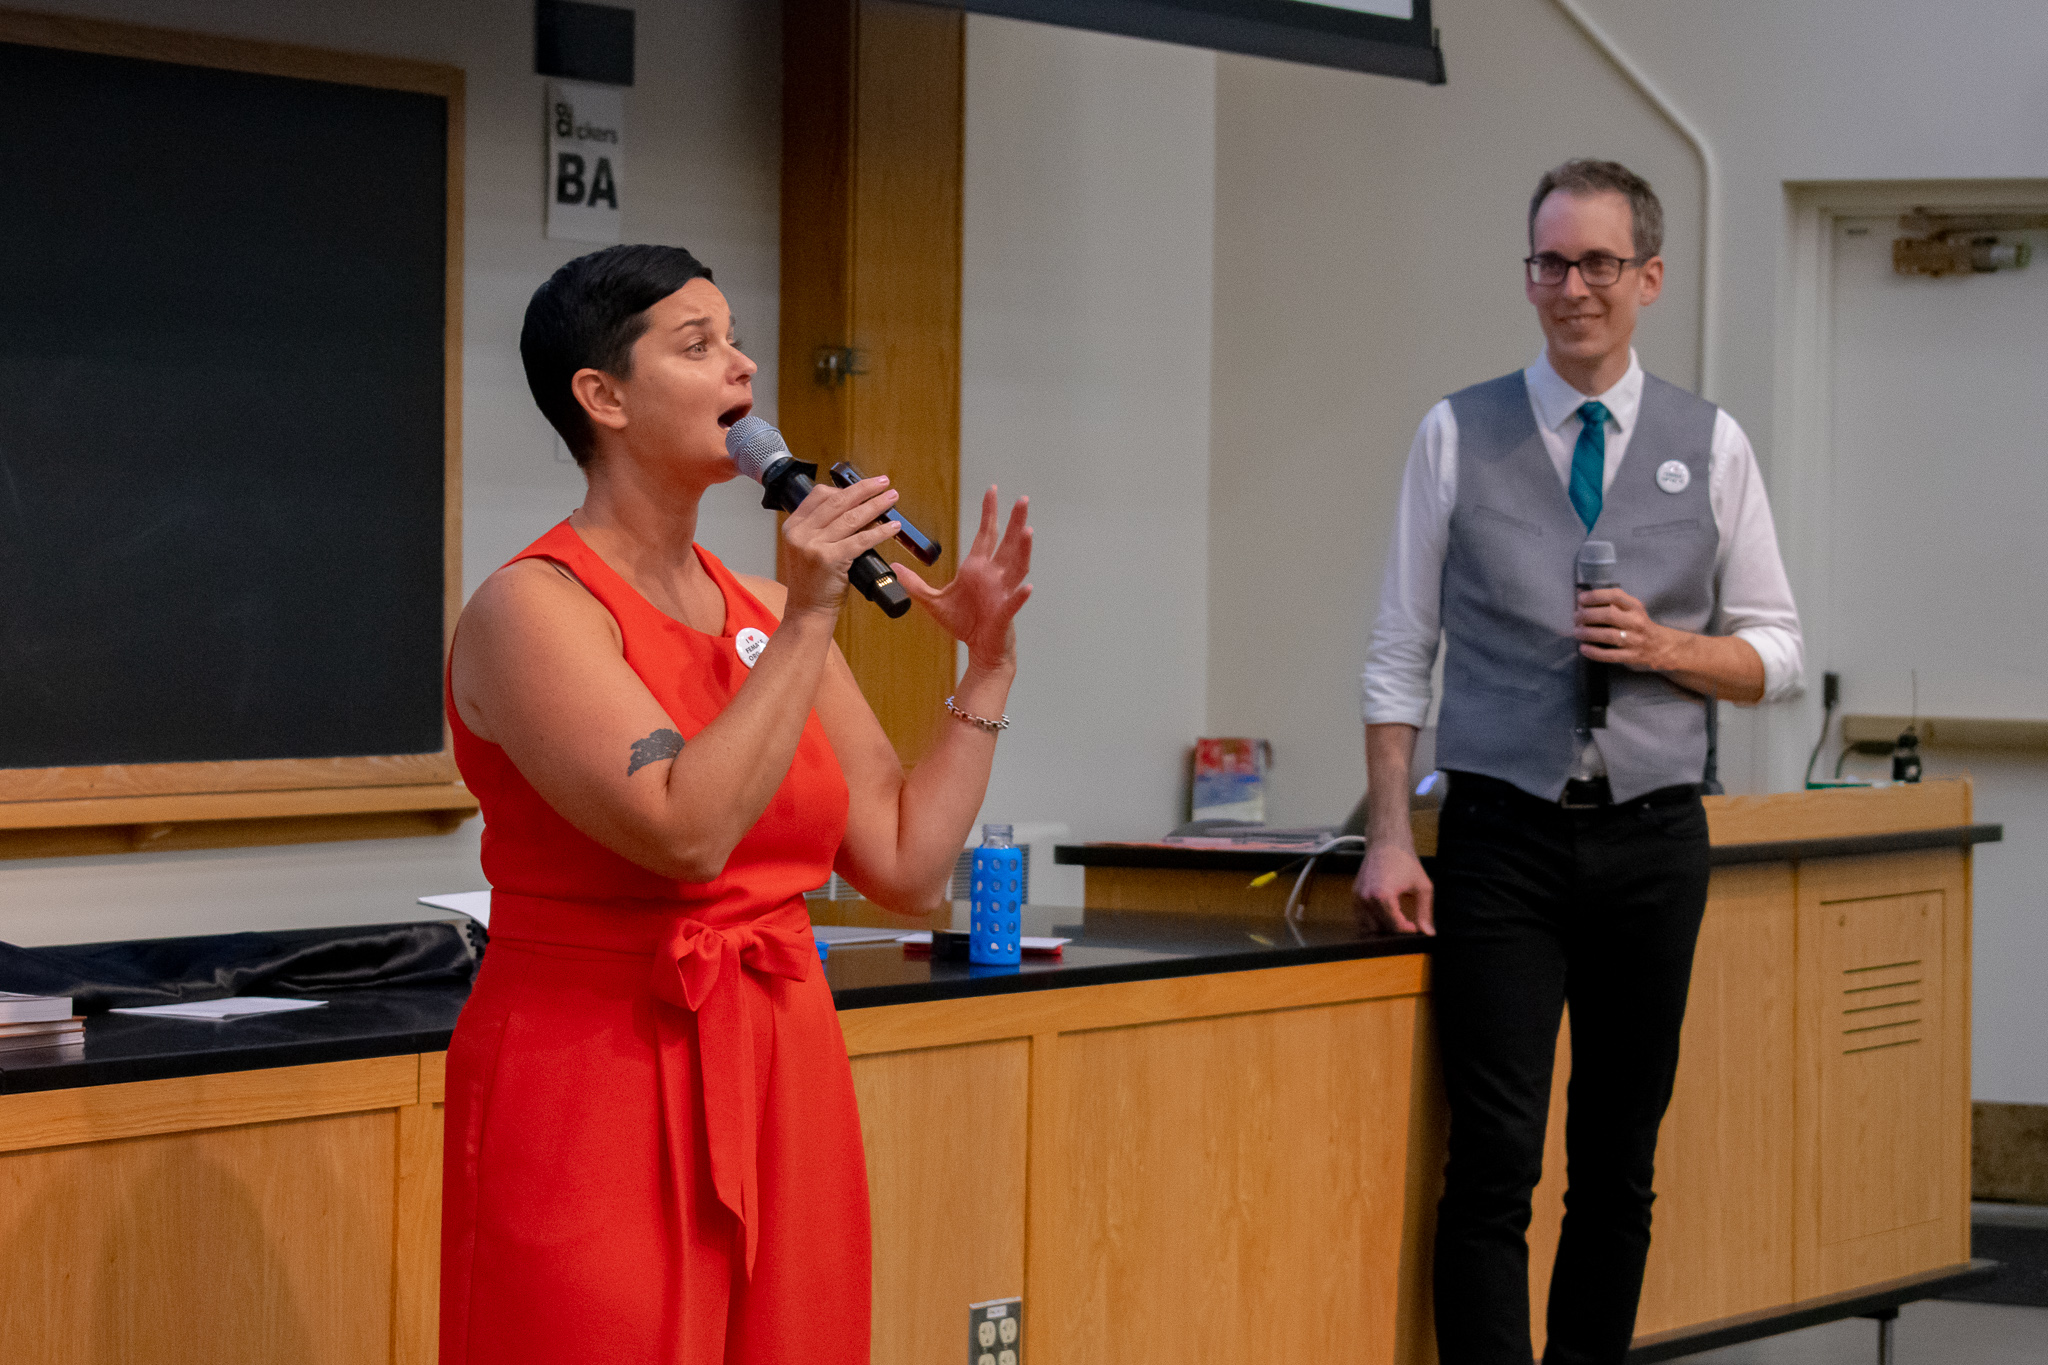 Sex educator Lindsay Fram speaks about her own experiences with sex while fellow sex educator Marshall Miller listens.